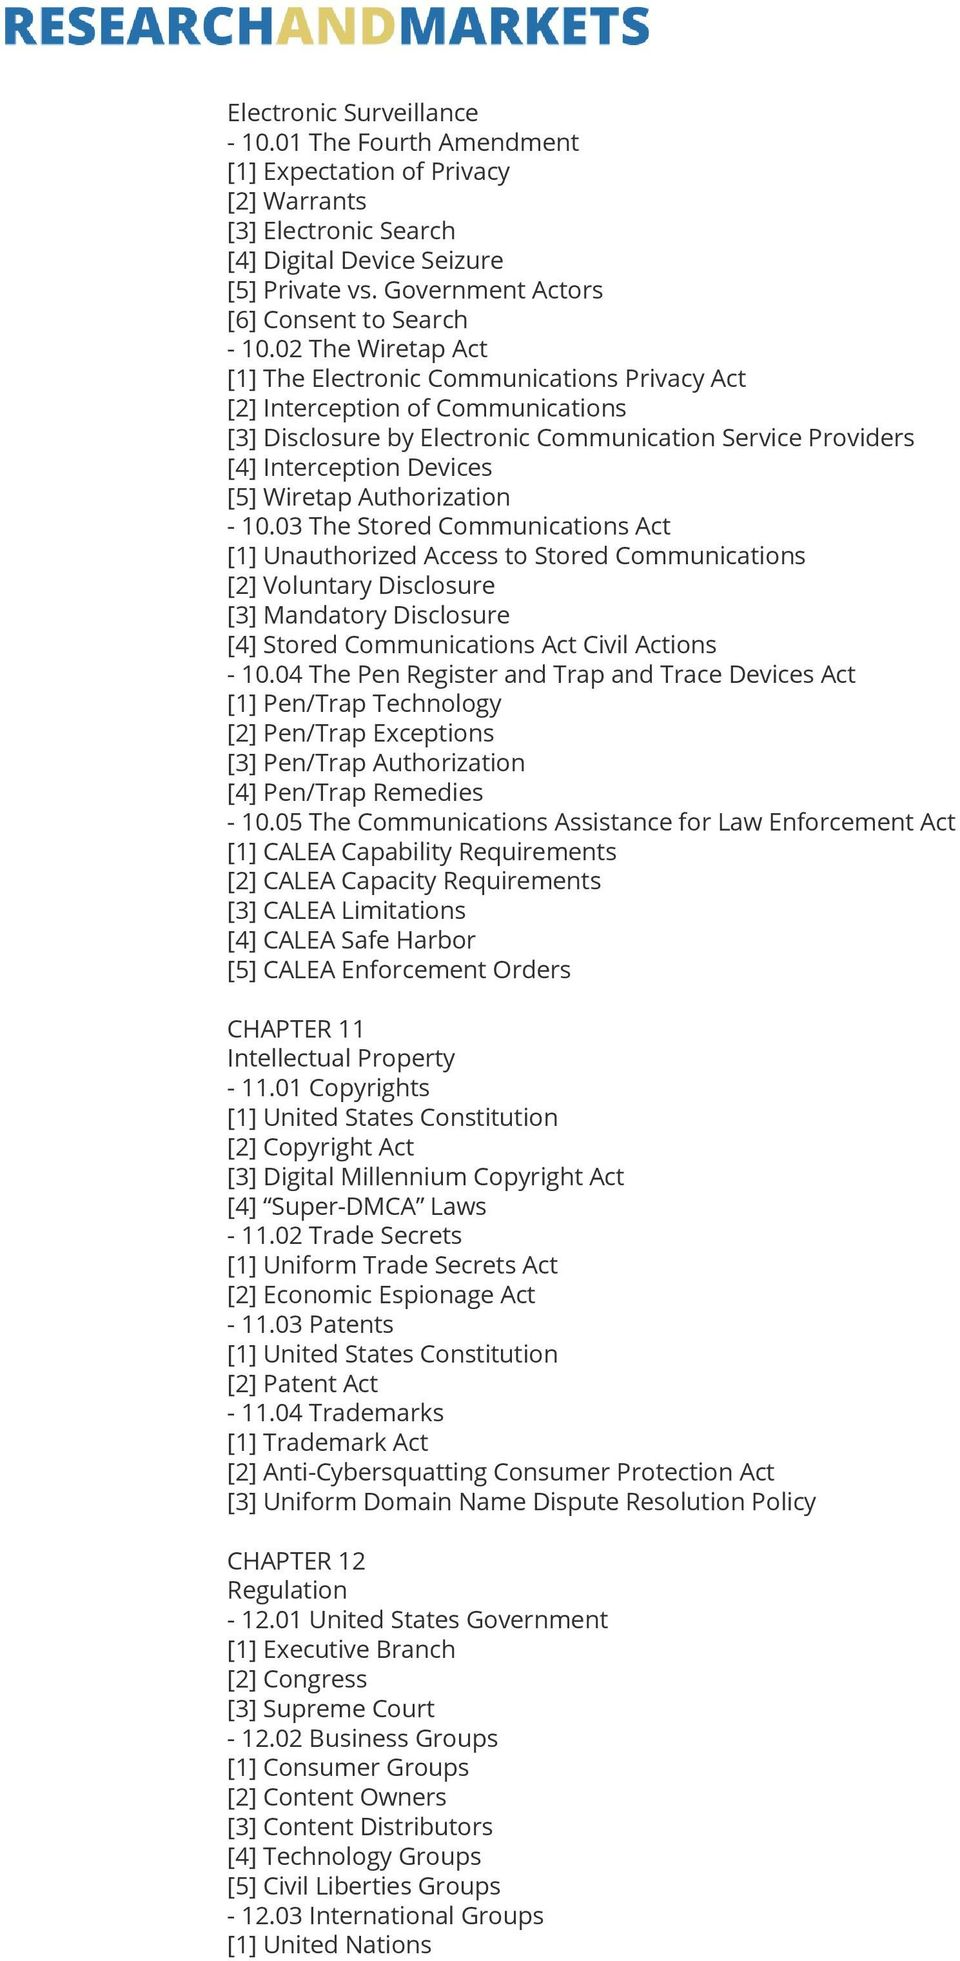 02 The Wiretap Act [1] The Electronic Communications Privacy Act [2] Interception of Communications [3] Disclosure by Electronic Communication Service Providers [4] Interception Devices [5] Wiretap